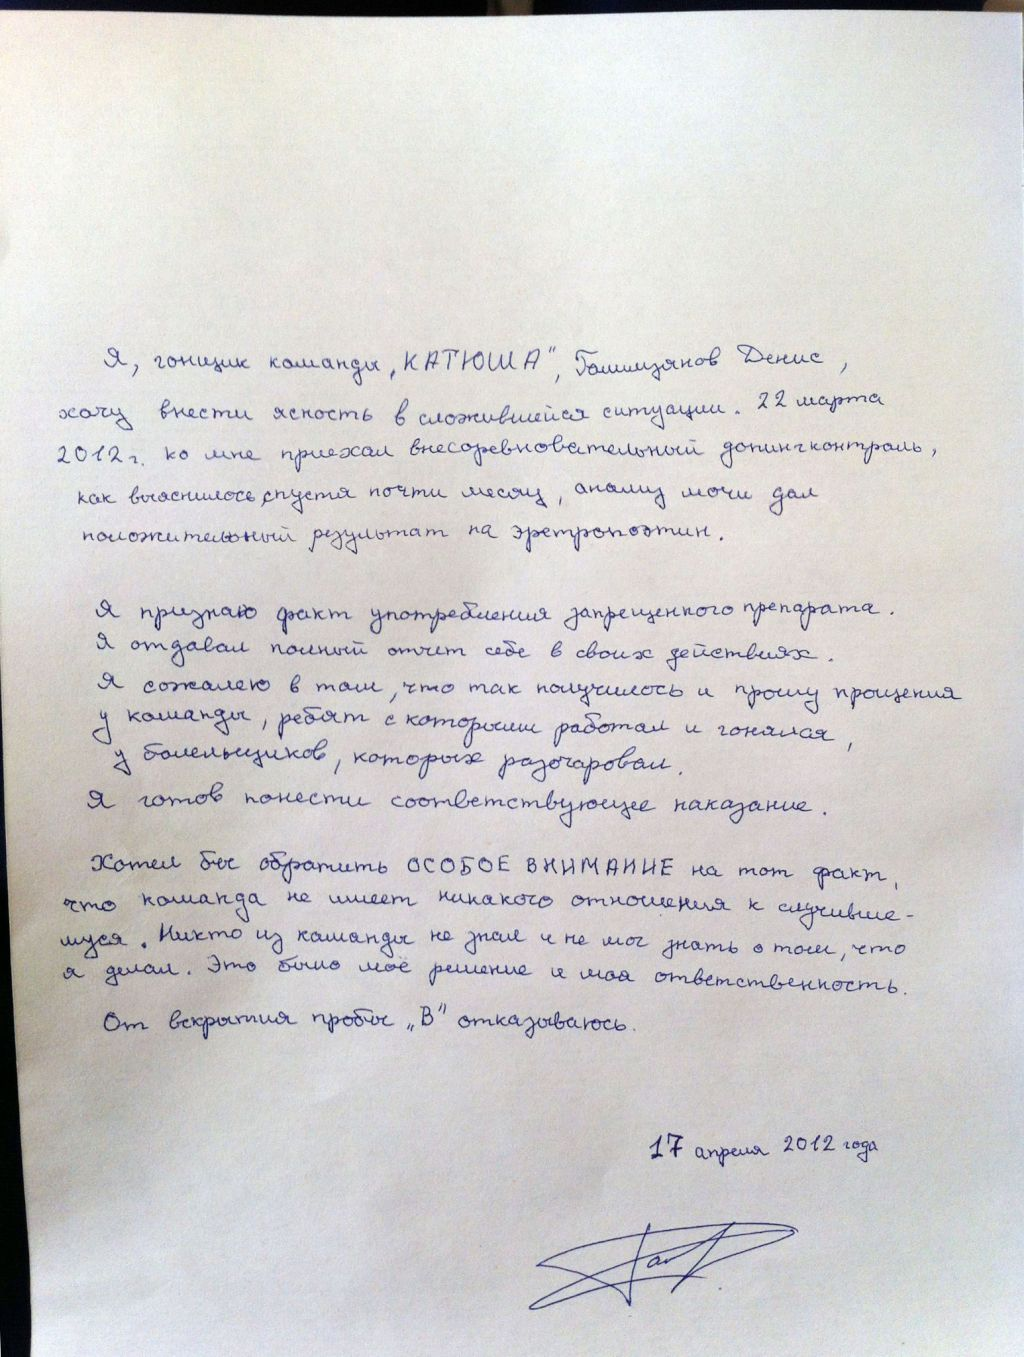 The galimzyanov letter and questions for katusha altavistaventures Images